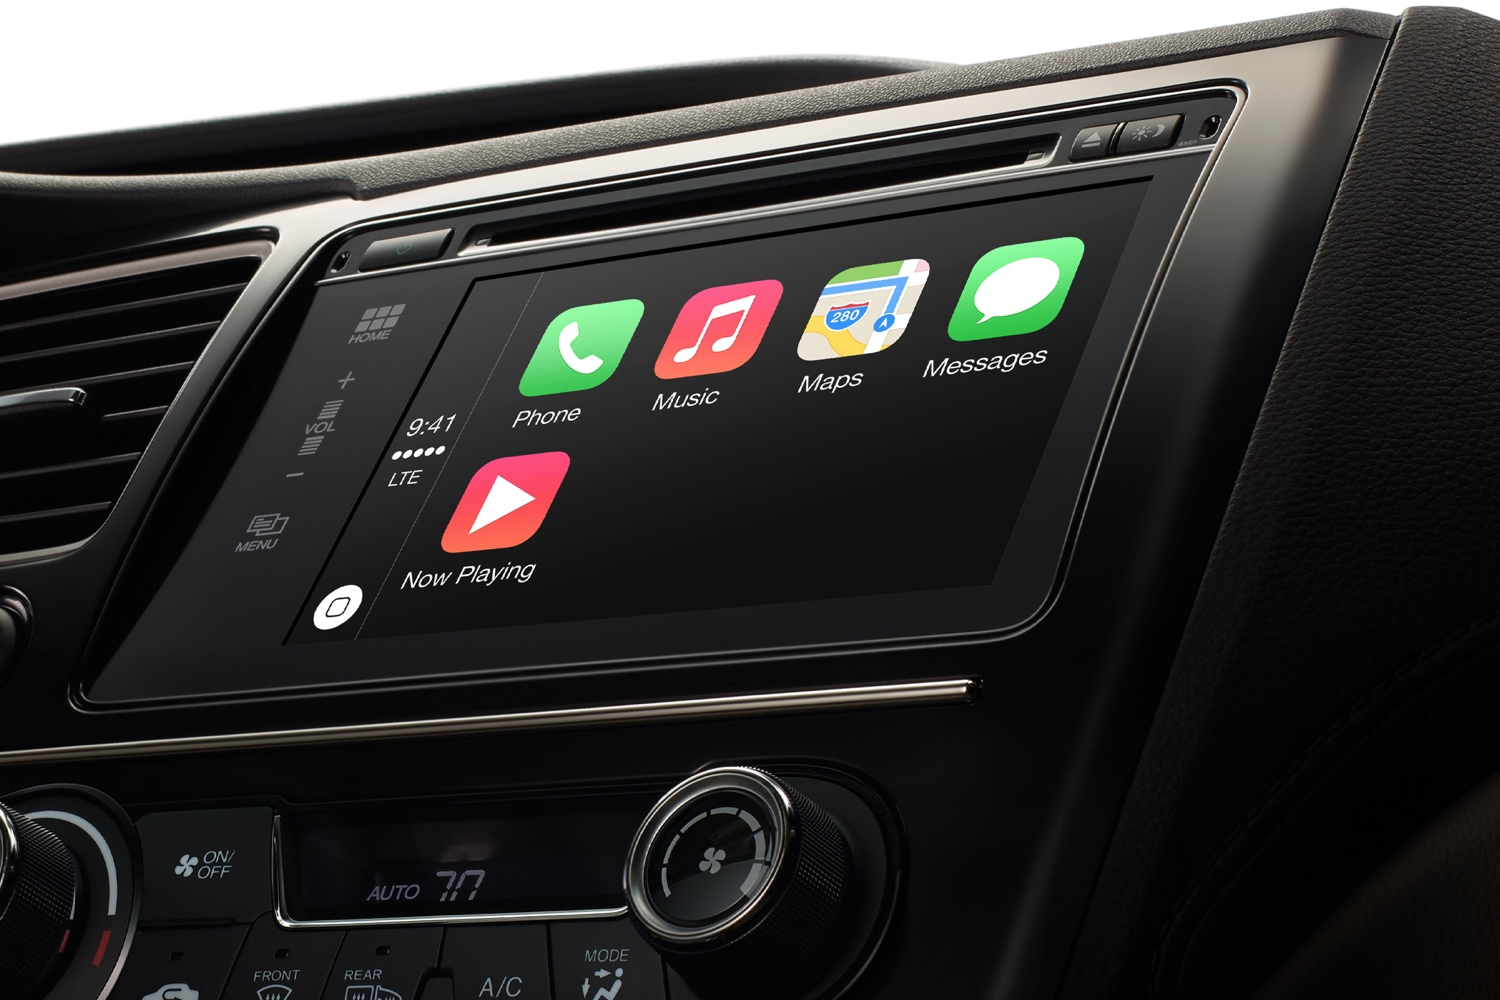 Apple's CarPlay interface offers simplified iPhone apps that can be used while driving.